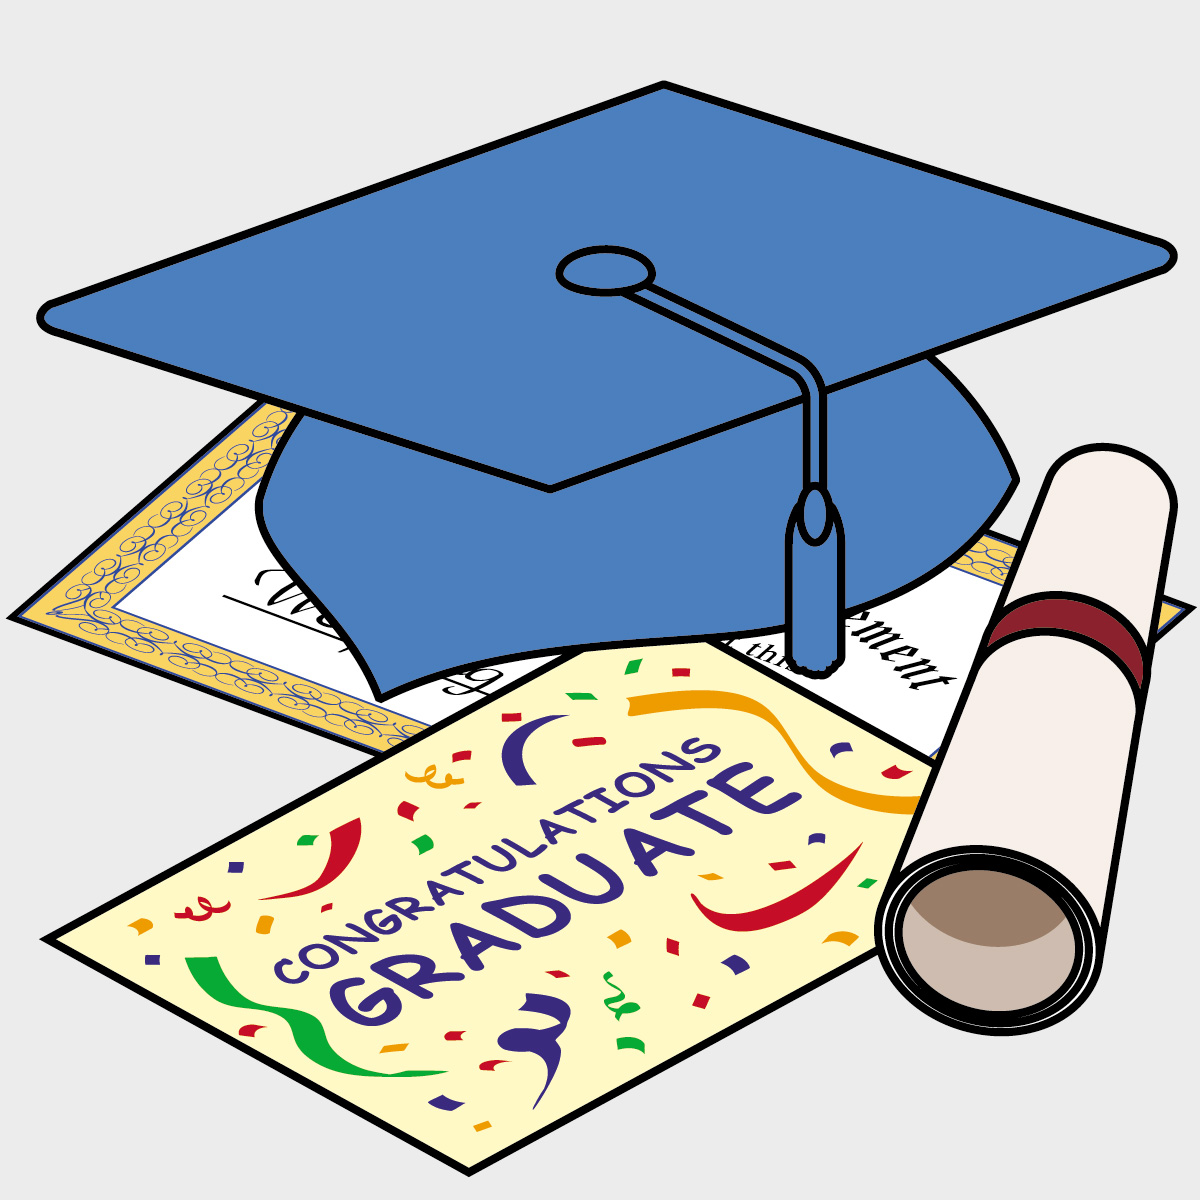 Special graduate clipart image black and white Free Promotion Cliparts, Download Free Clip Art, Free Clip Art on ... image black and white